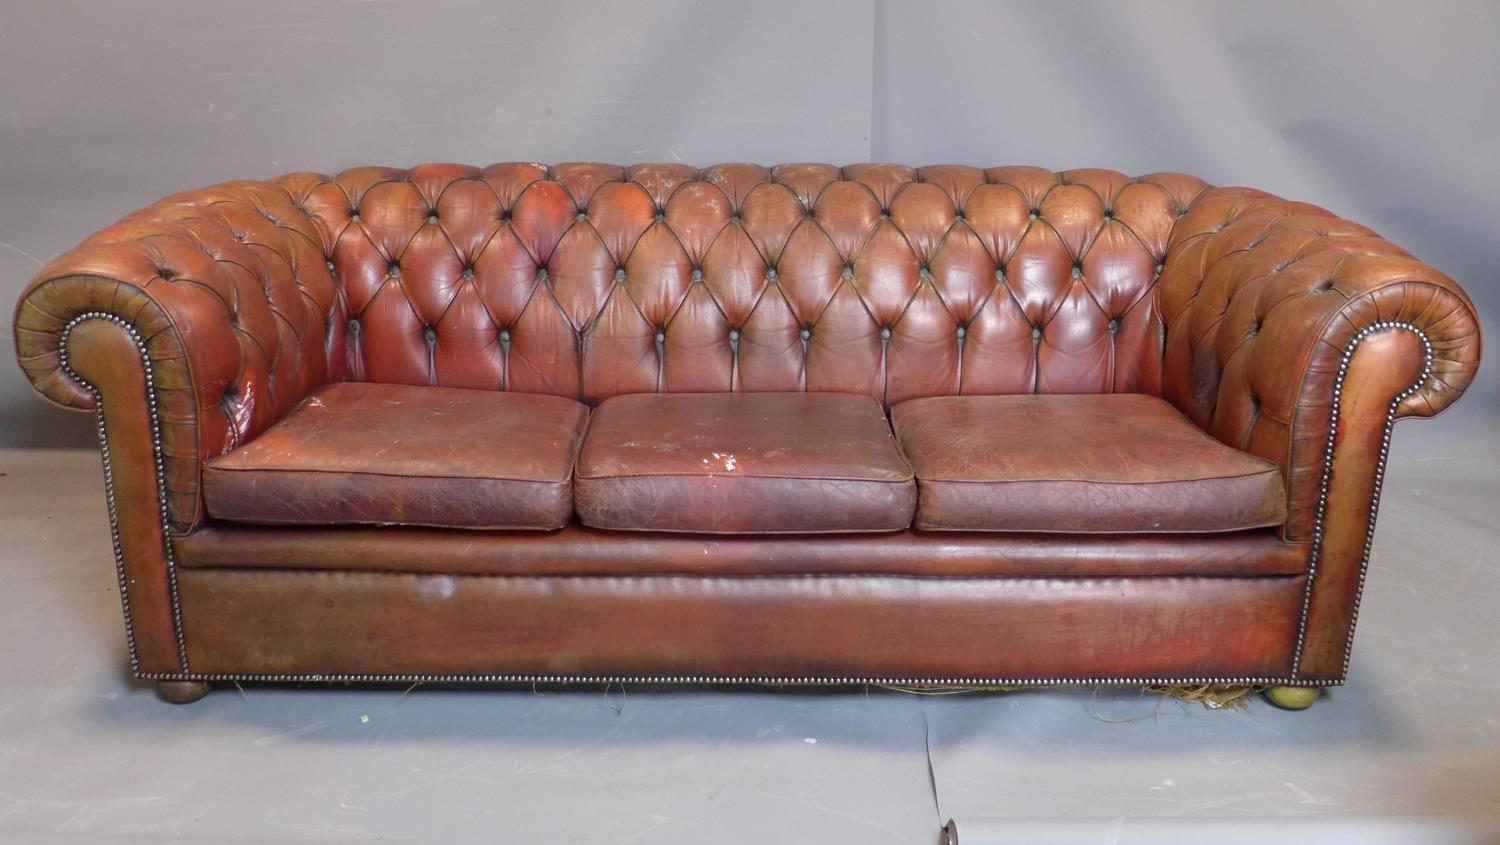 A three seater leather Chesterfield sofa, with button back upholstery, heavily worn